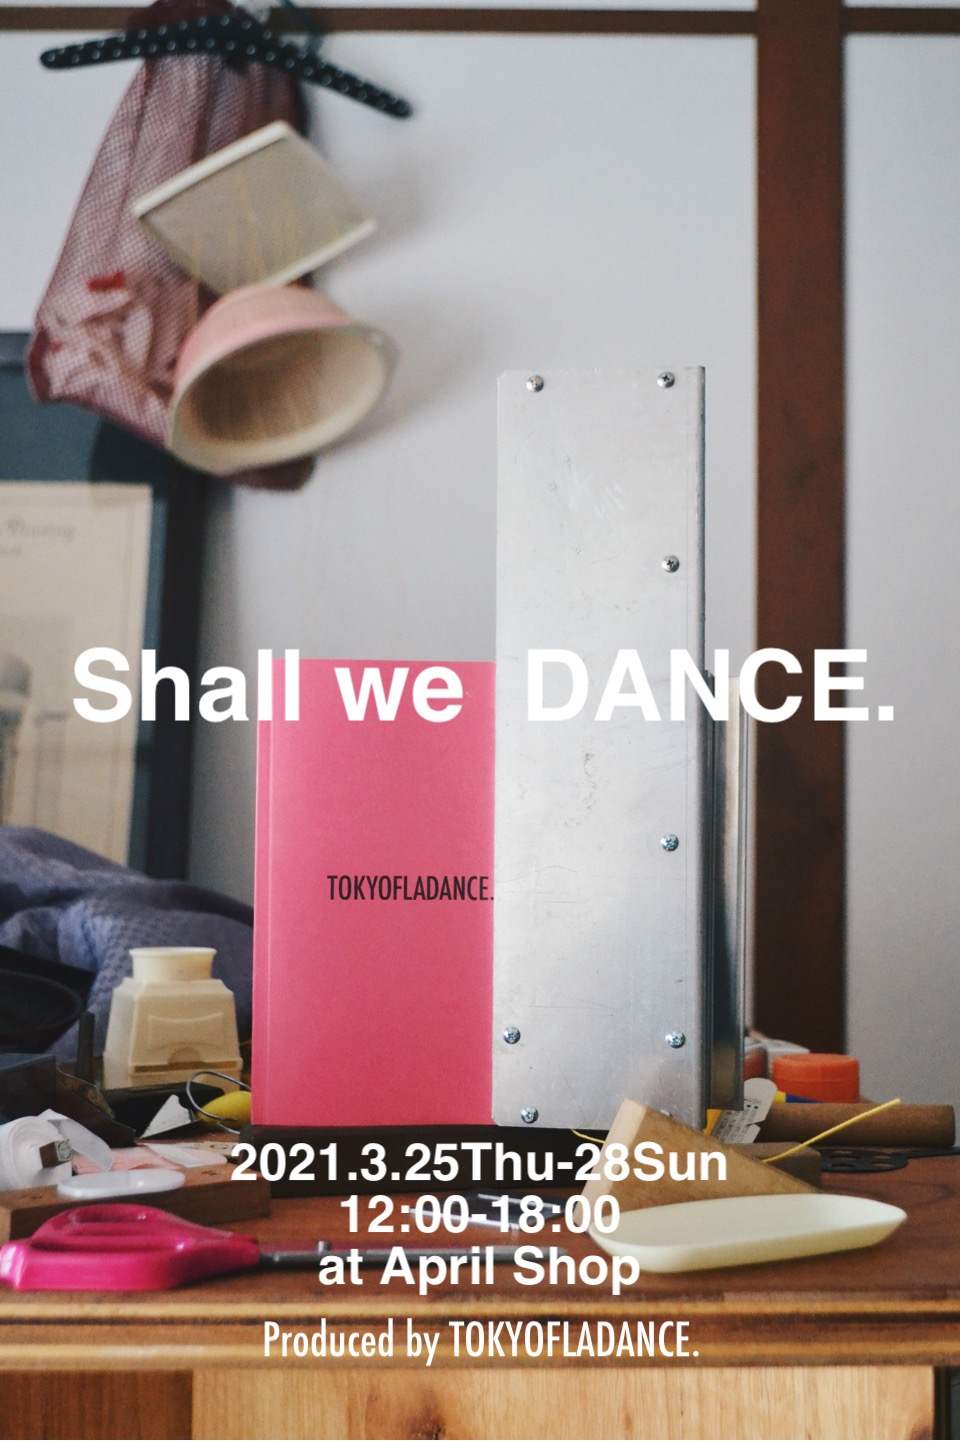 Shall we DANCE. Produced by TOKYOFLADANCE.